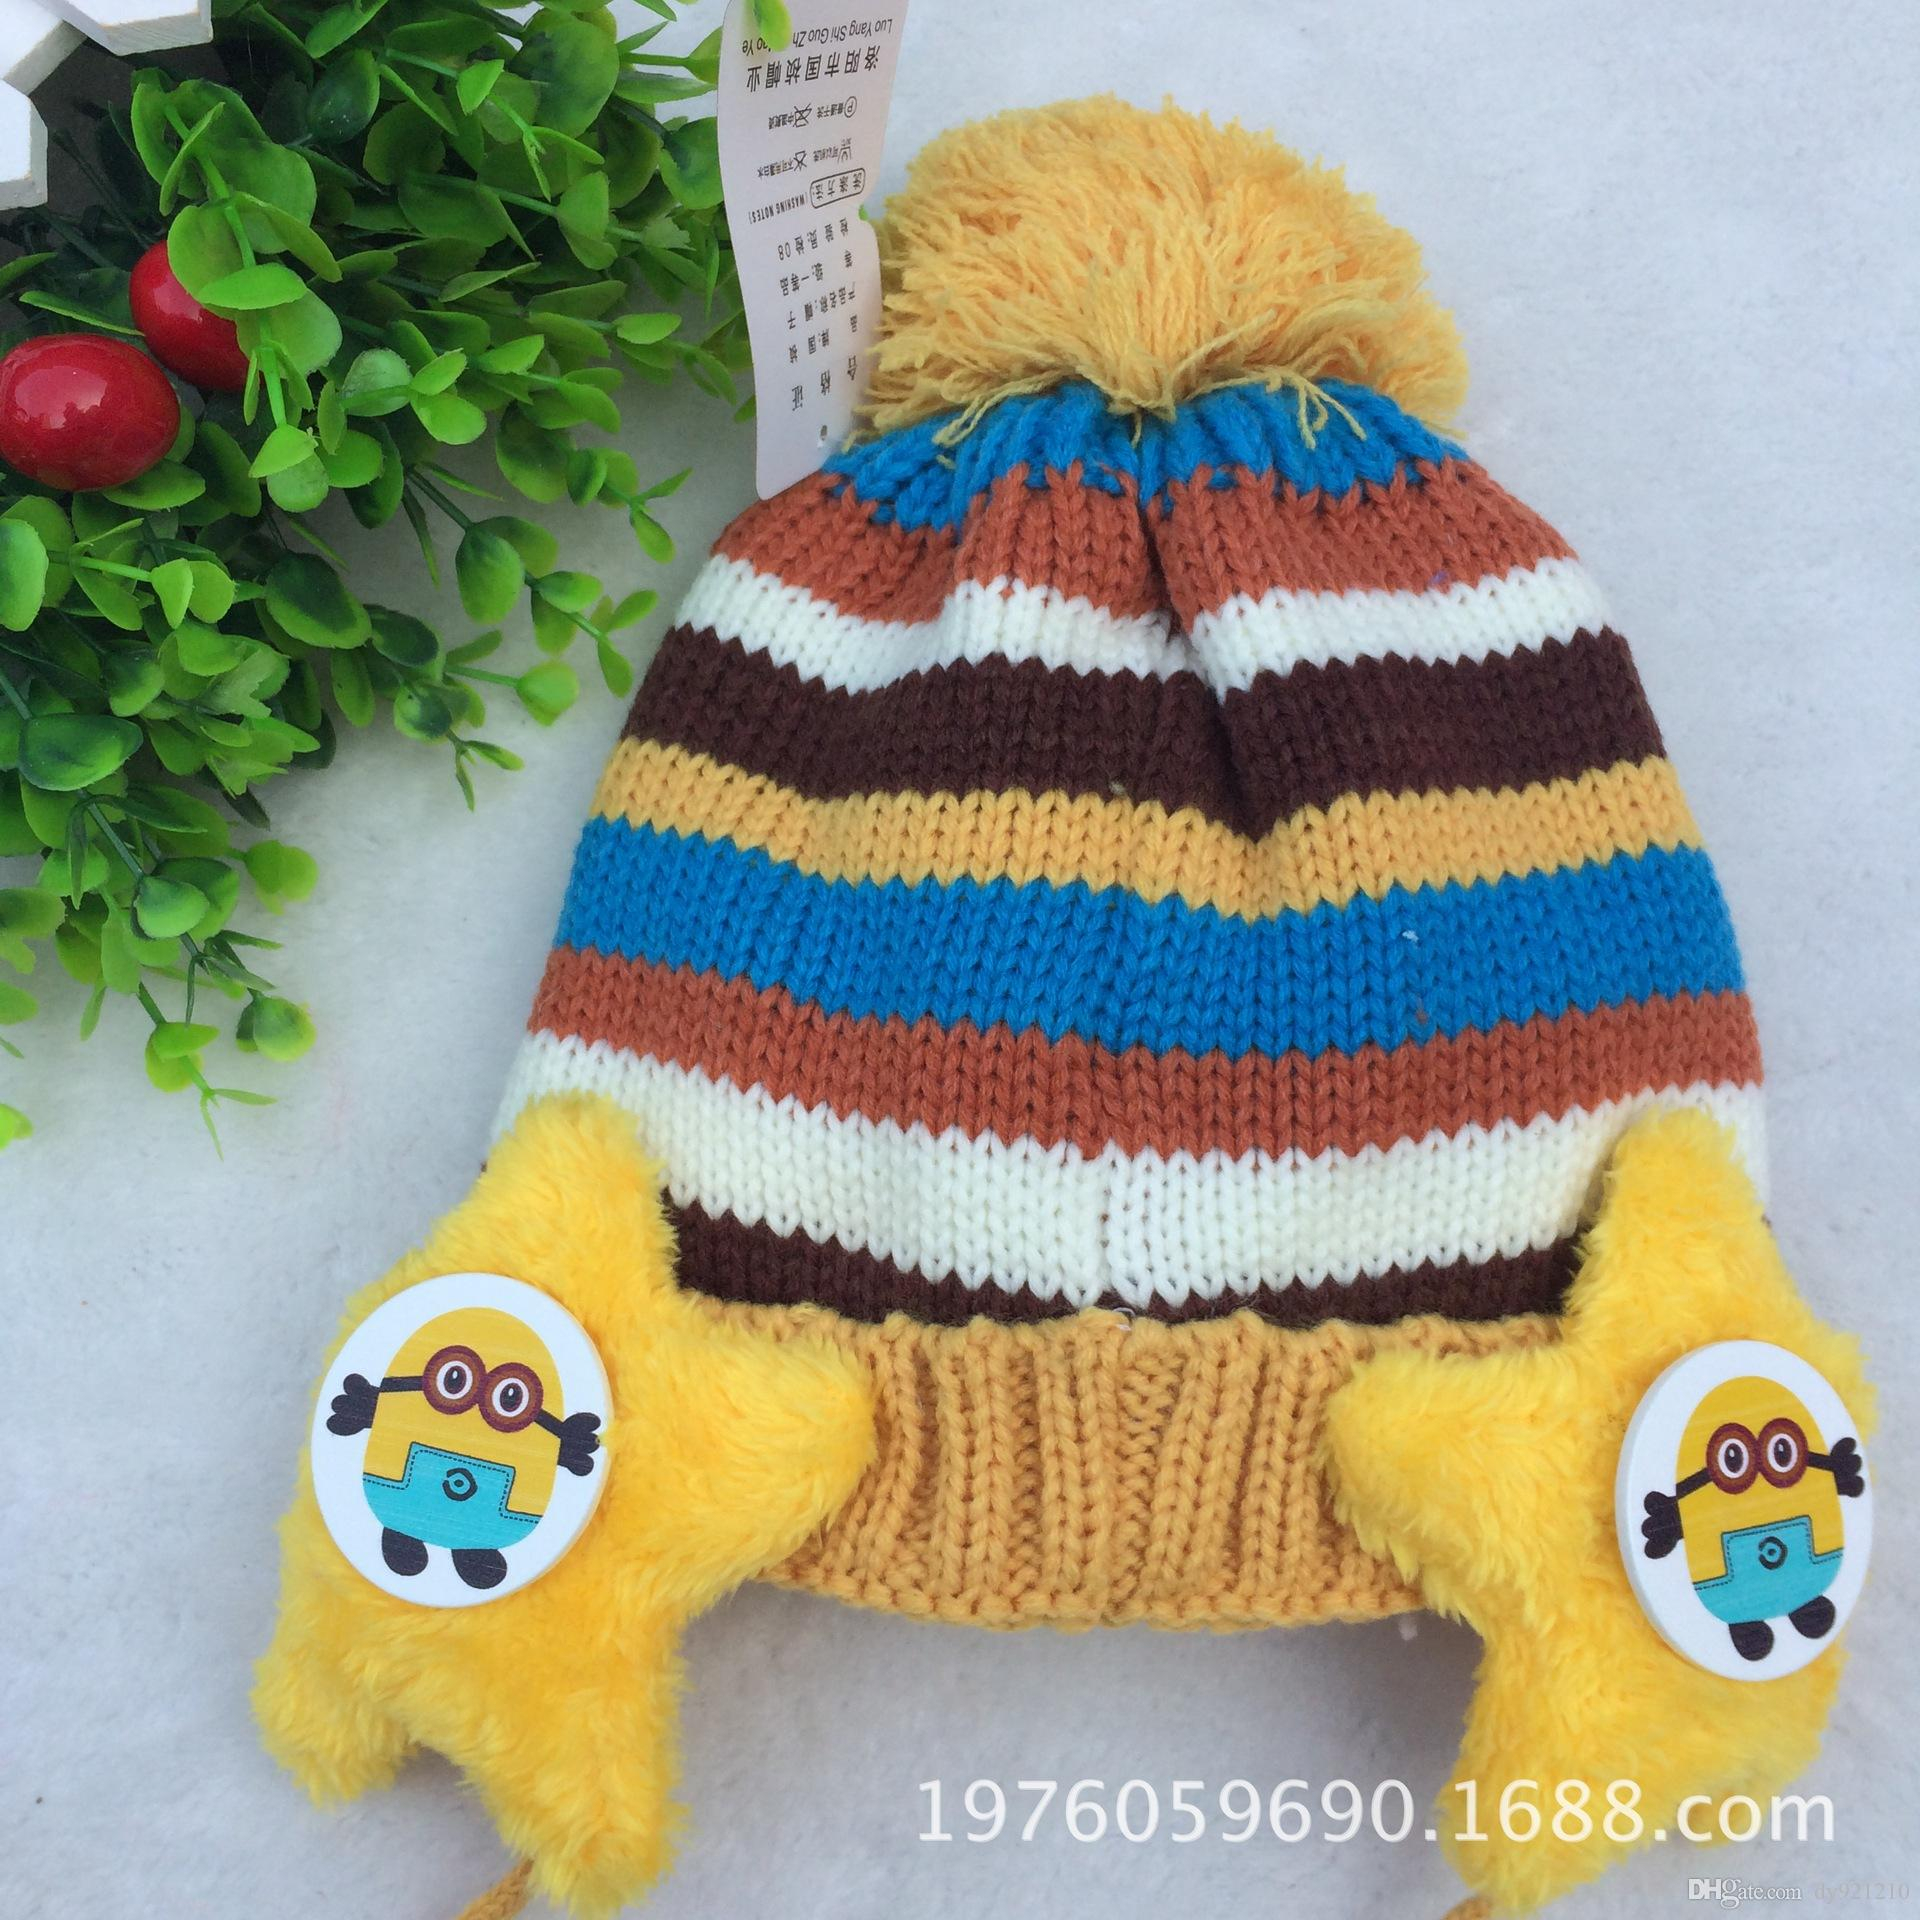 Knitting Patterns For Minion Hats Seoproductname